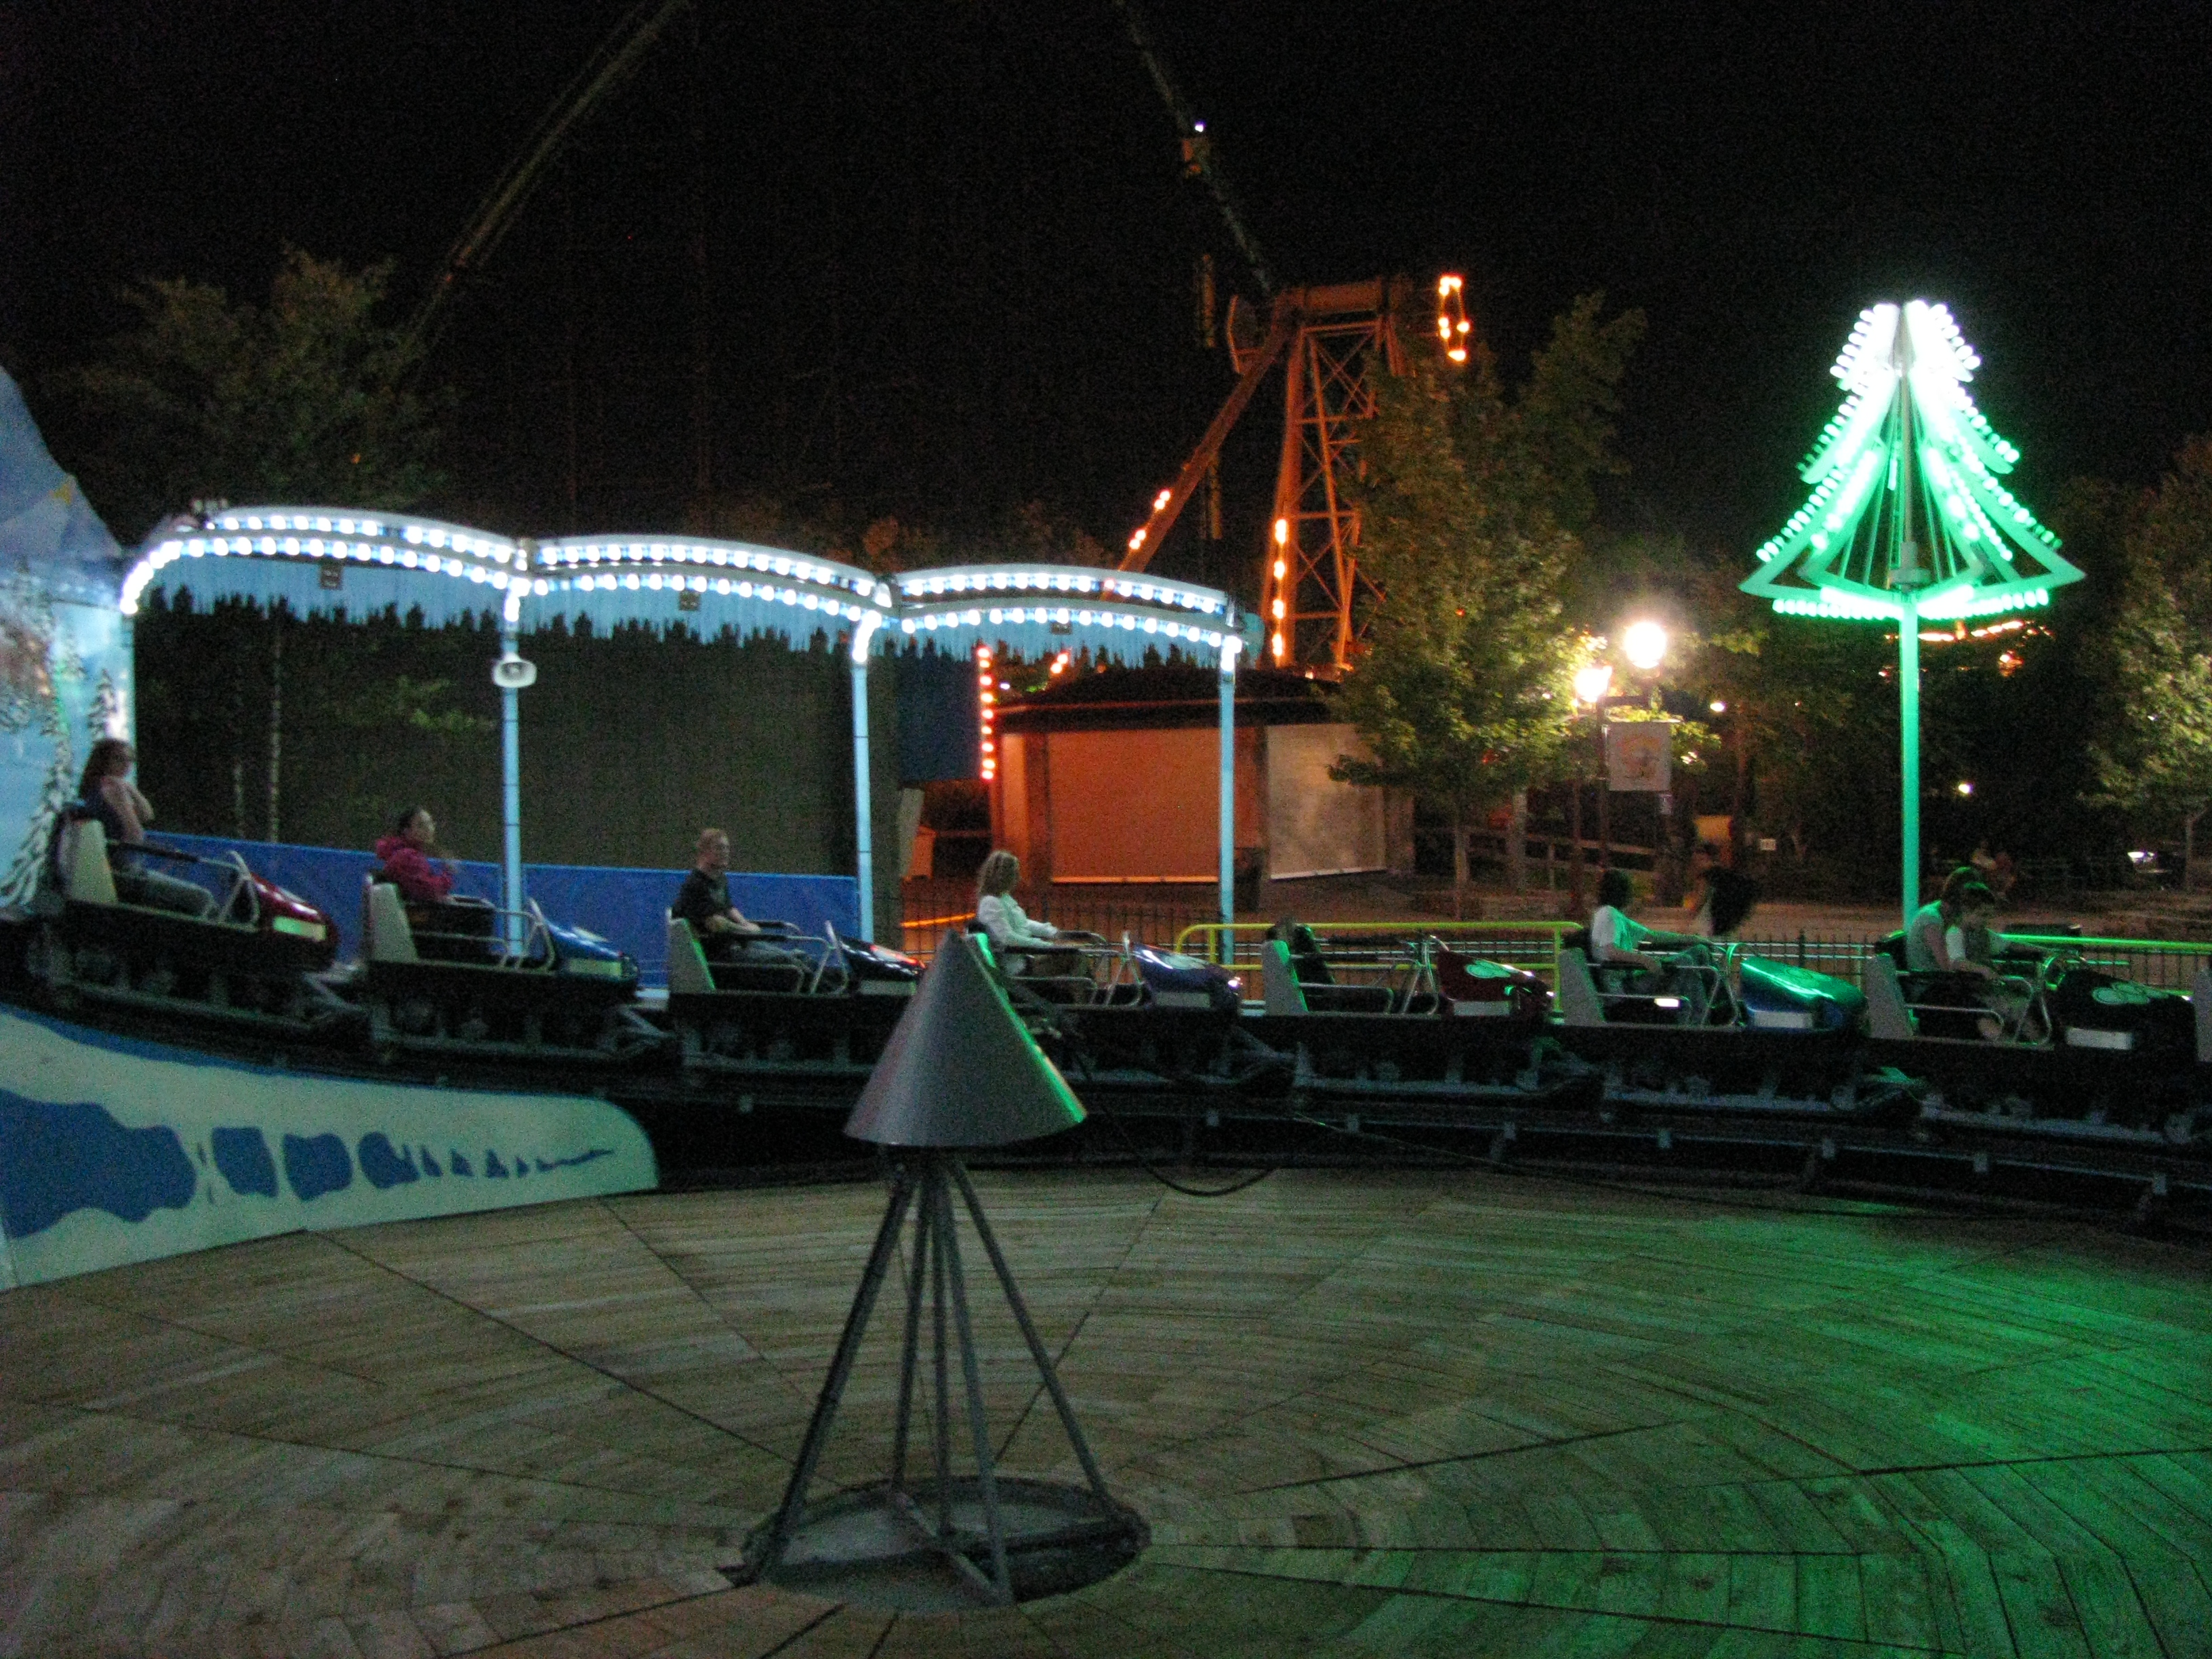 Fright night kennywood 2018 coupons